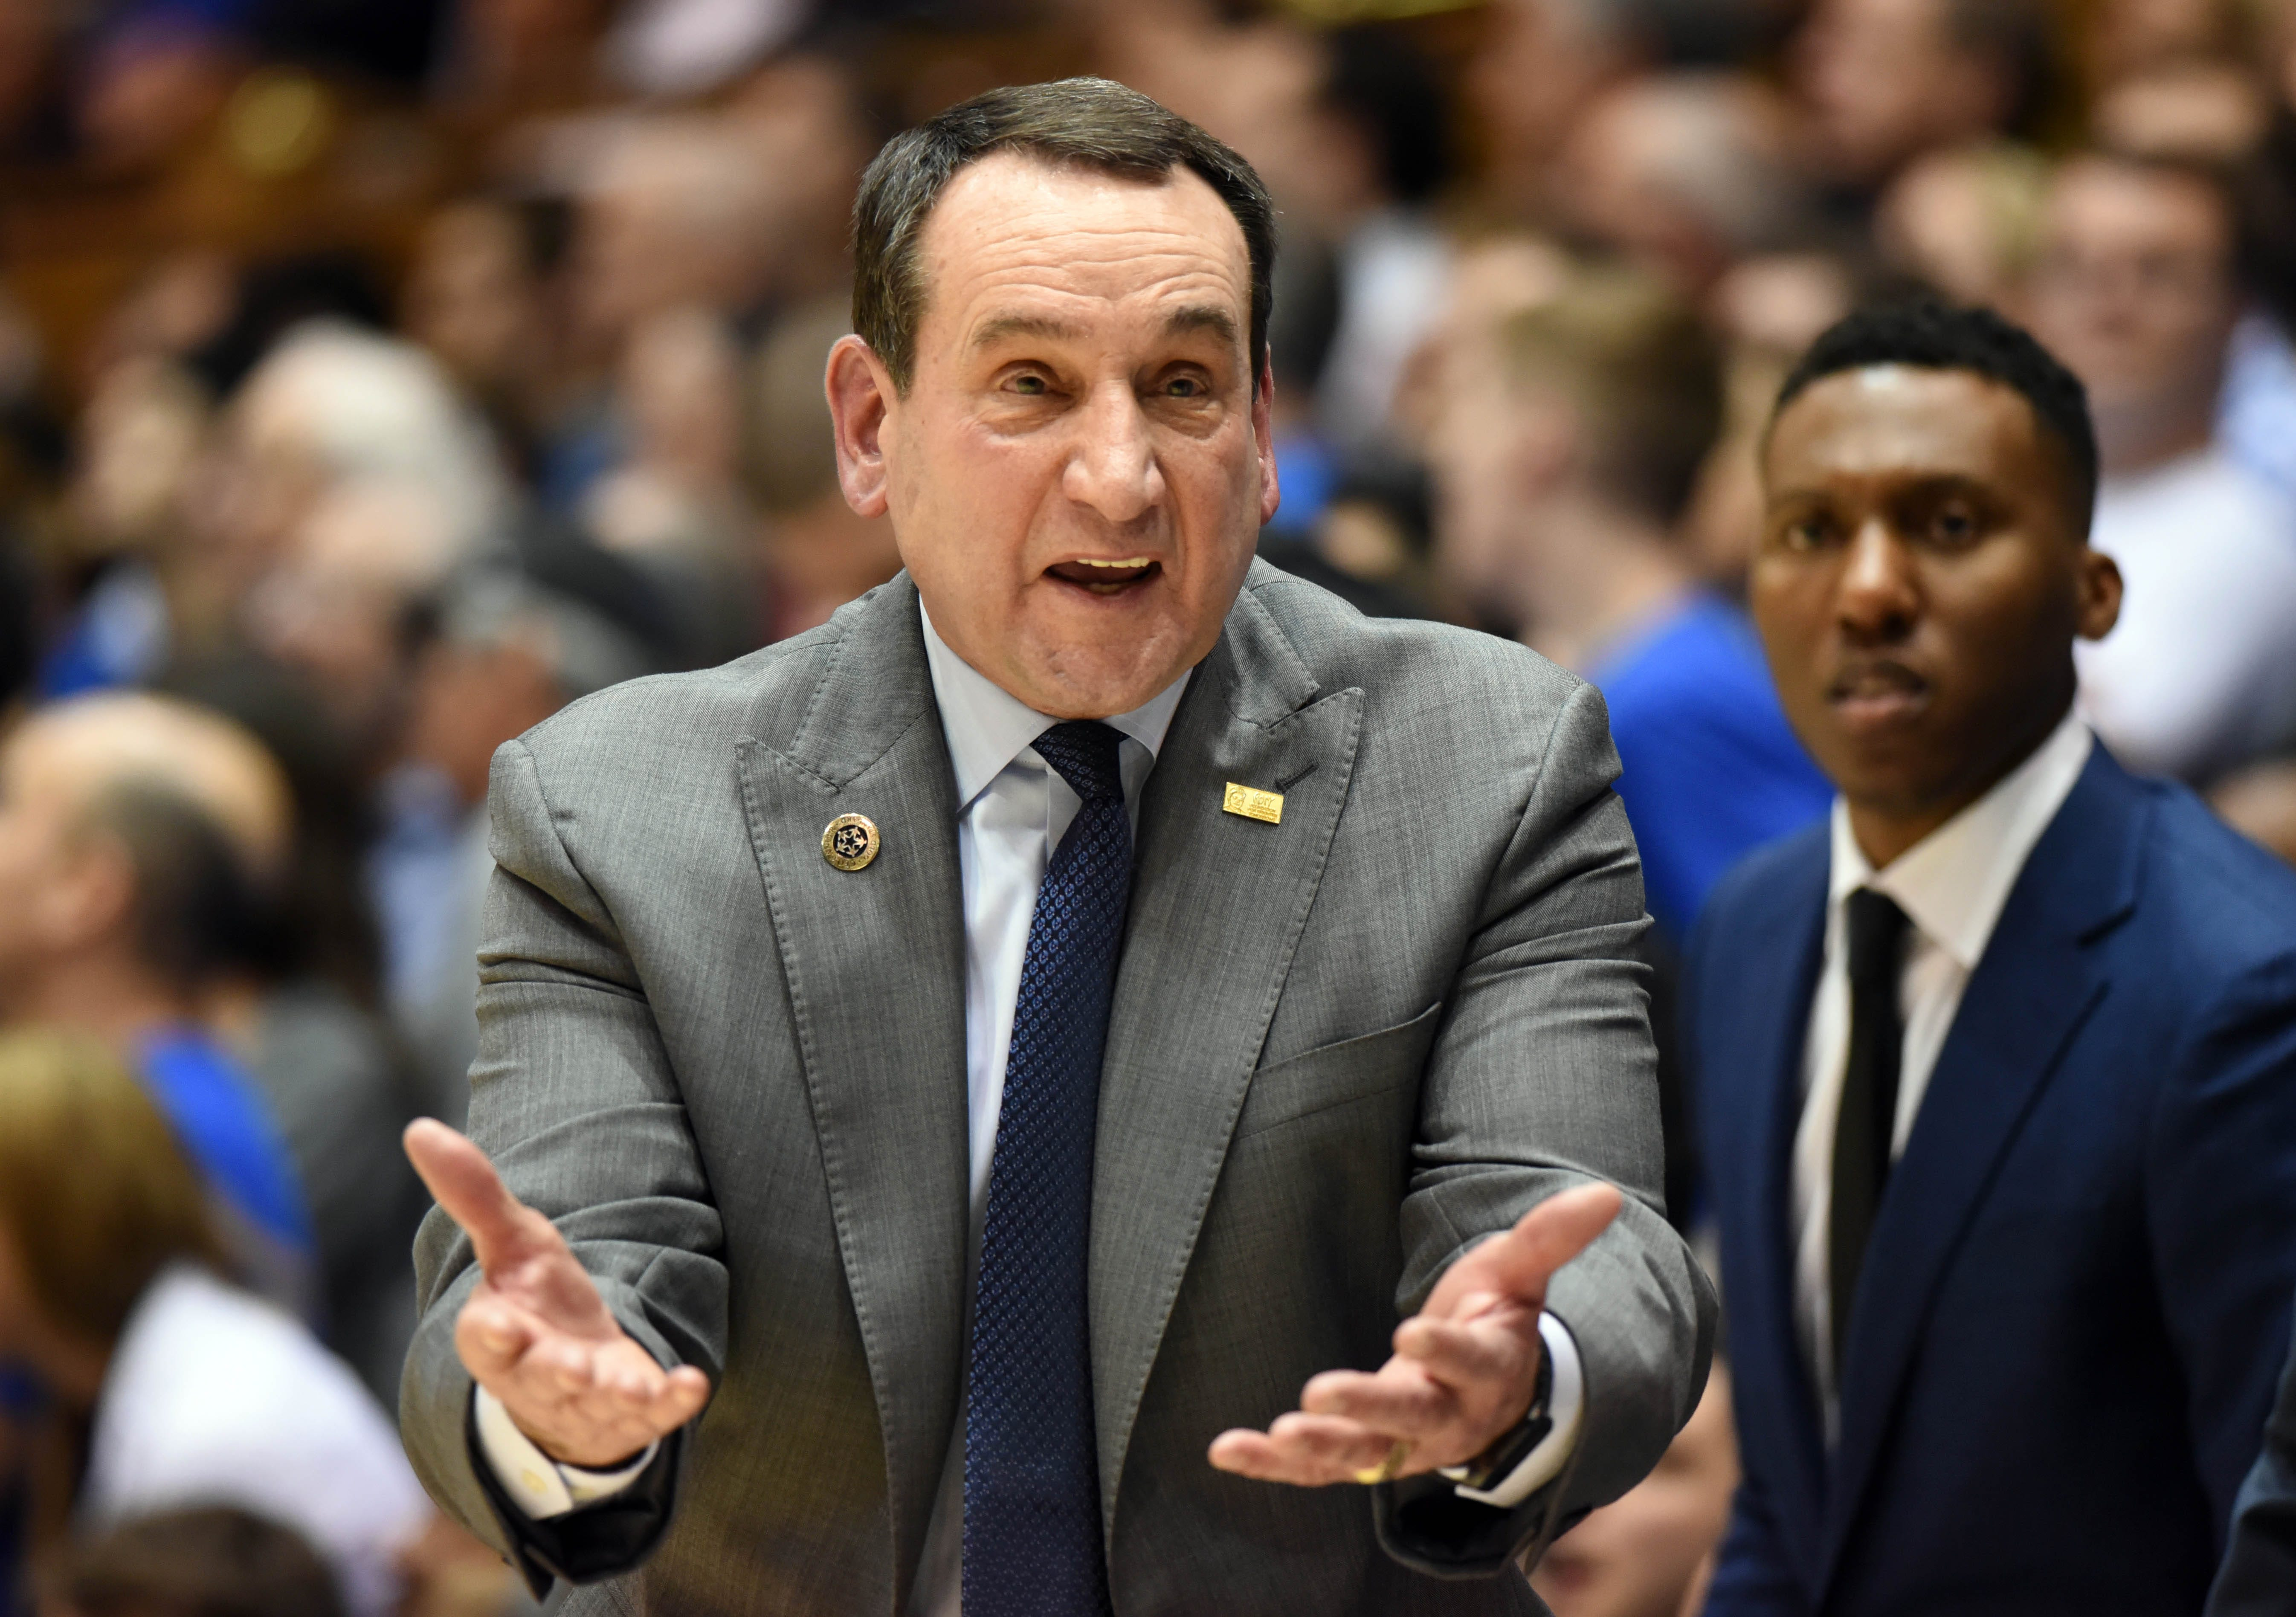 Opinion: Playing college basketball is madness with COVID-19 raging. Just ask the coaches